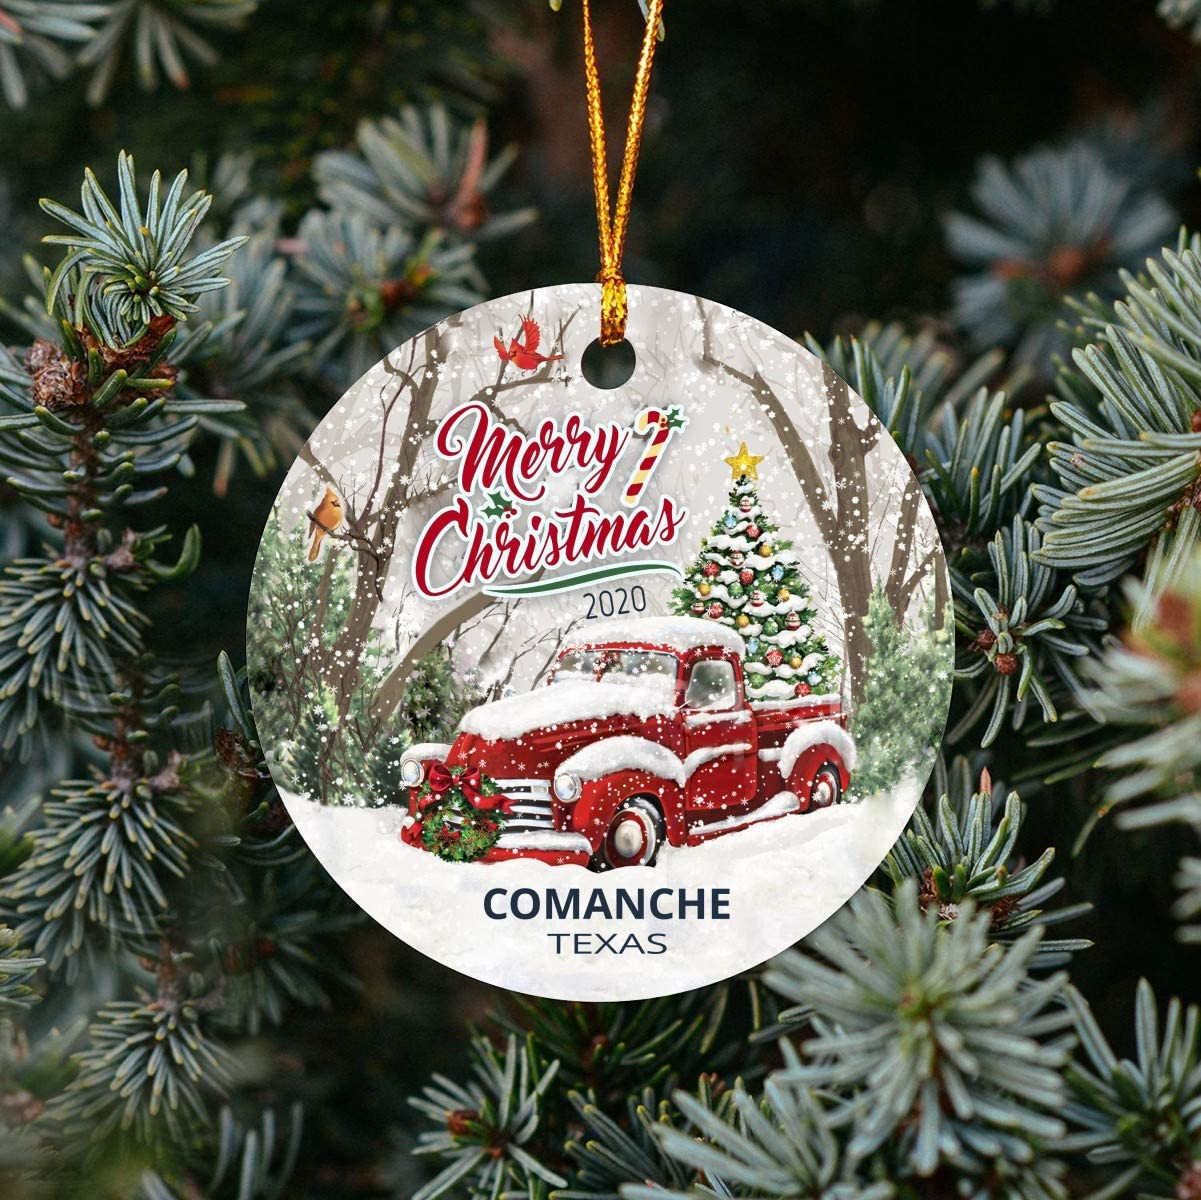 """Christmas Tree Ornaments 2020 - Ornament Customize With Name City And State Comanche Texas TX - Red Truck Xmas Ornaments 3"""" Plastic Gift For Family, Friend And Housewarming"""